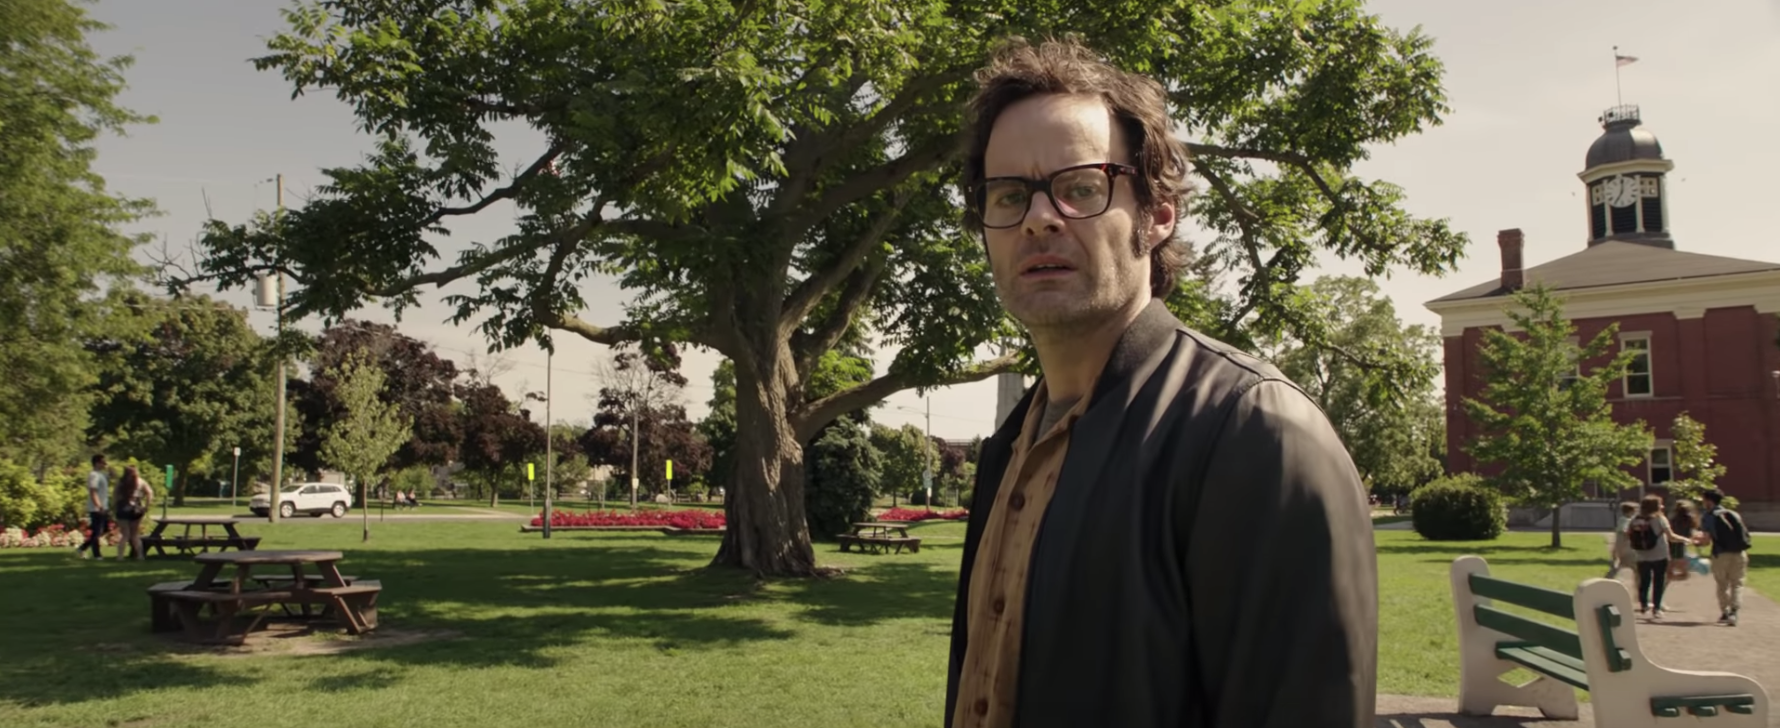 The Best Part Of 'It: Chapter Two' Is That Bill Hader Is Finally Getting The Recognition He Deserves